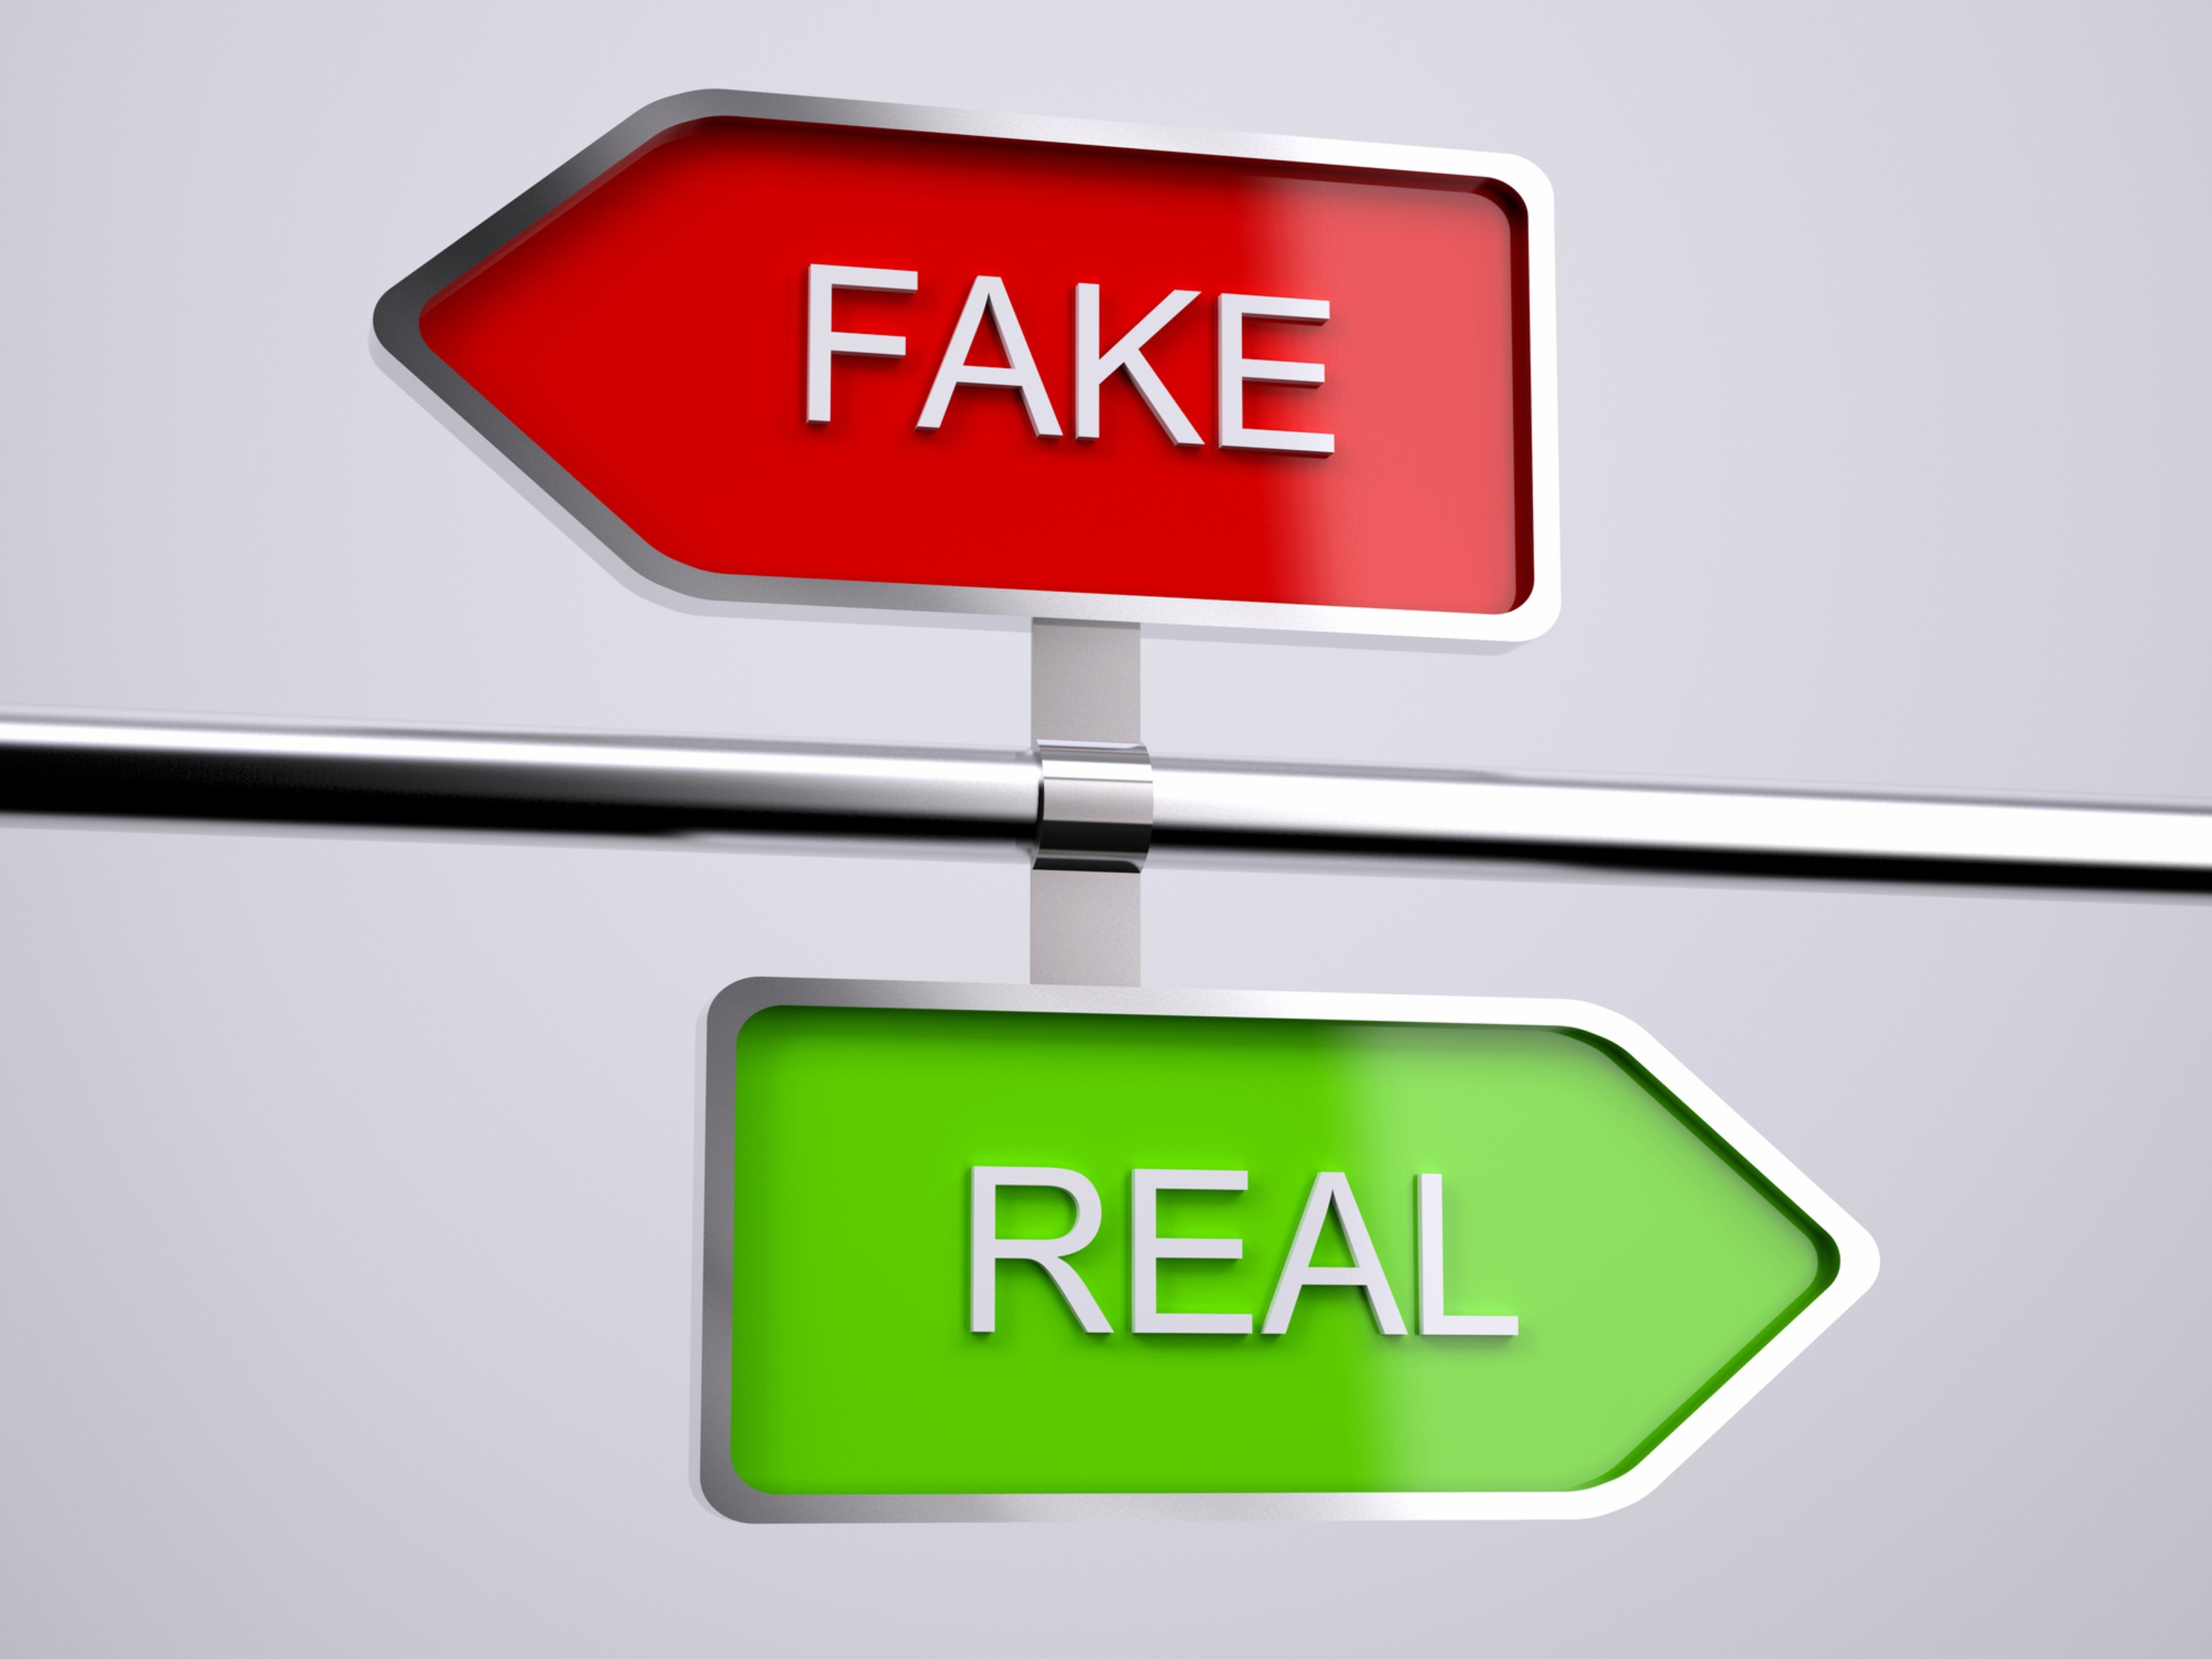 authentic customer relationships - fake vs real ID 86444609 © Fabio Berti